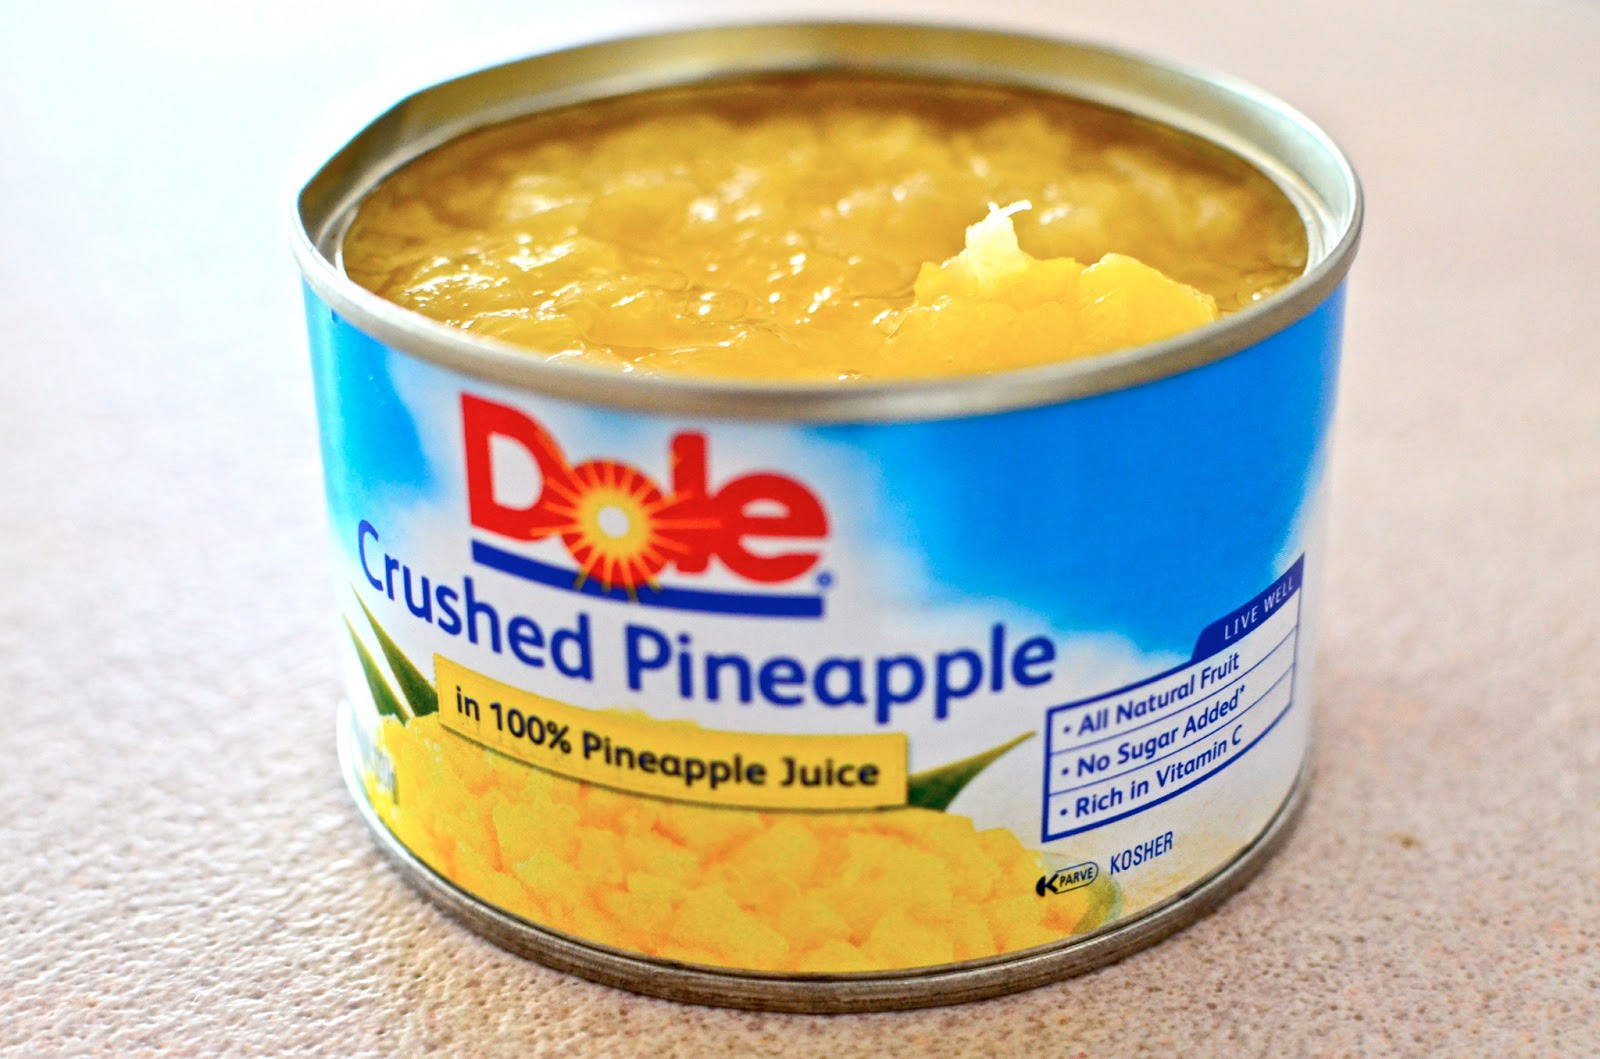 The Pineapple Industry's Dirty Secret